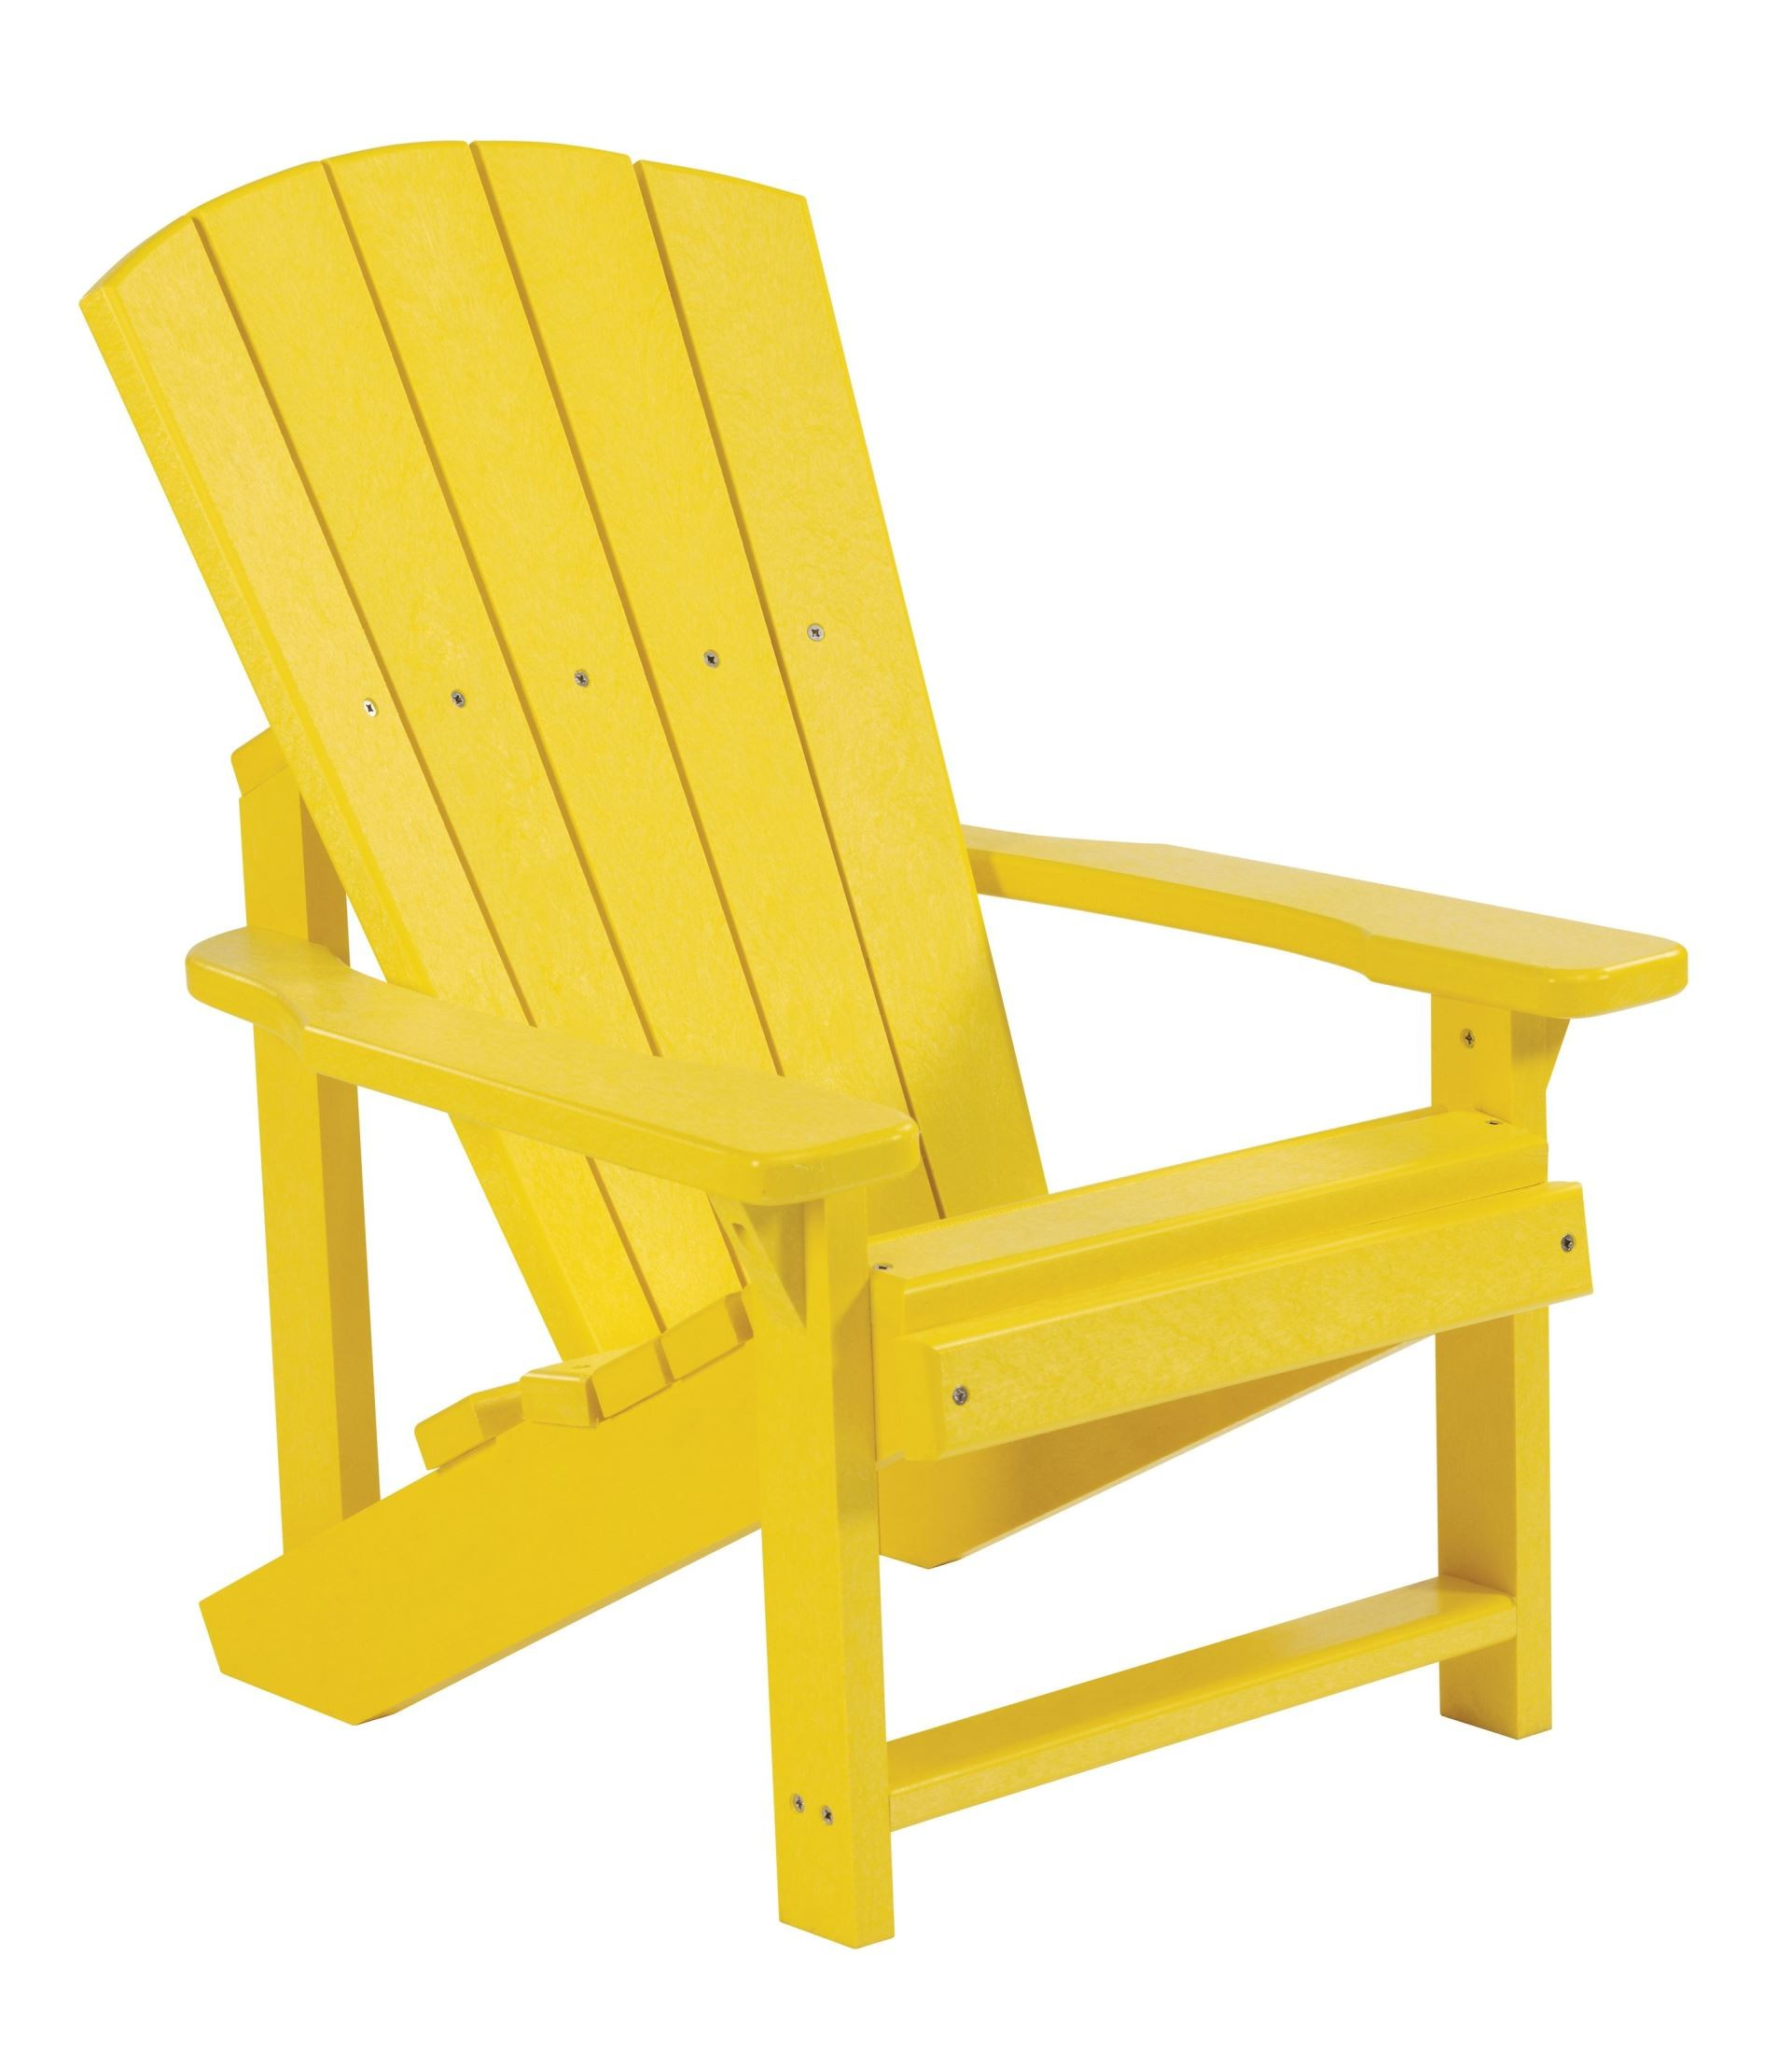 Generations Yellow Kids Adirondack Chair From Cr Plastic